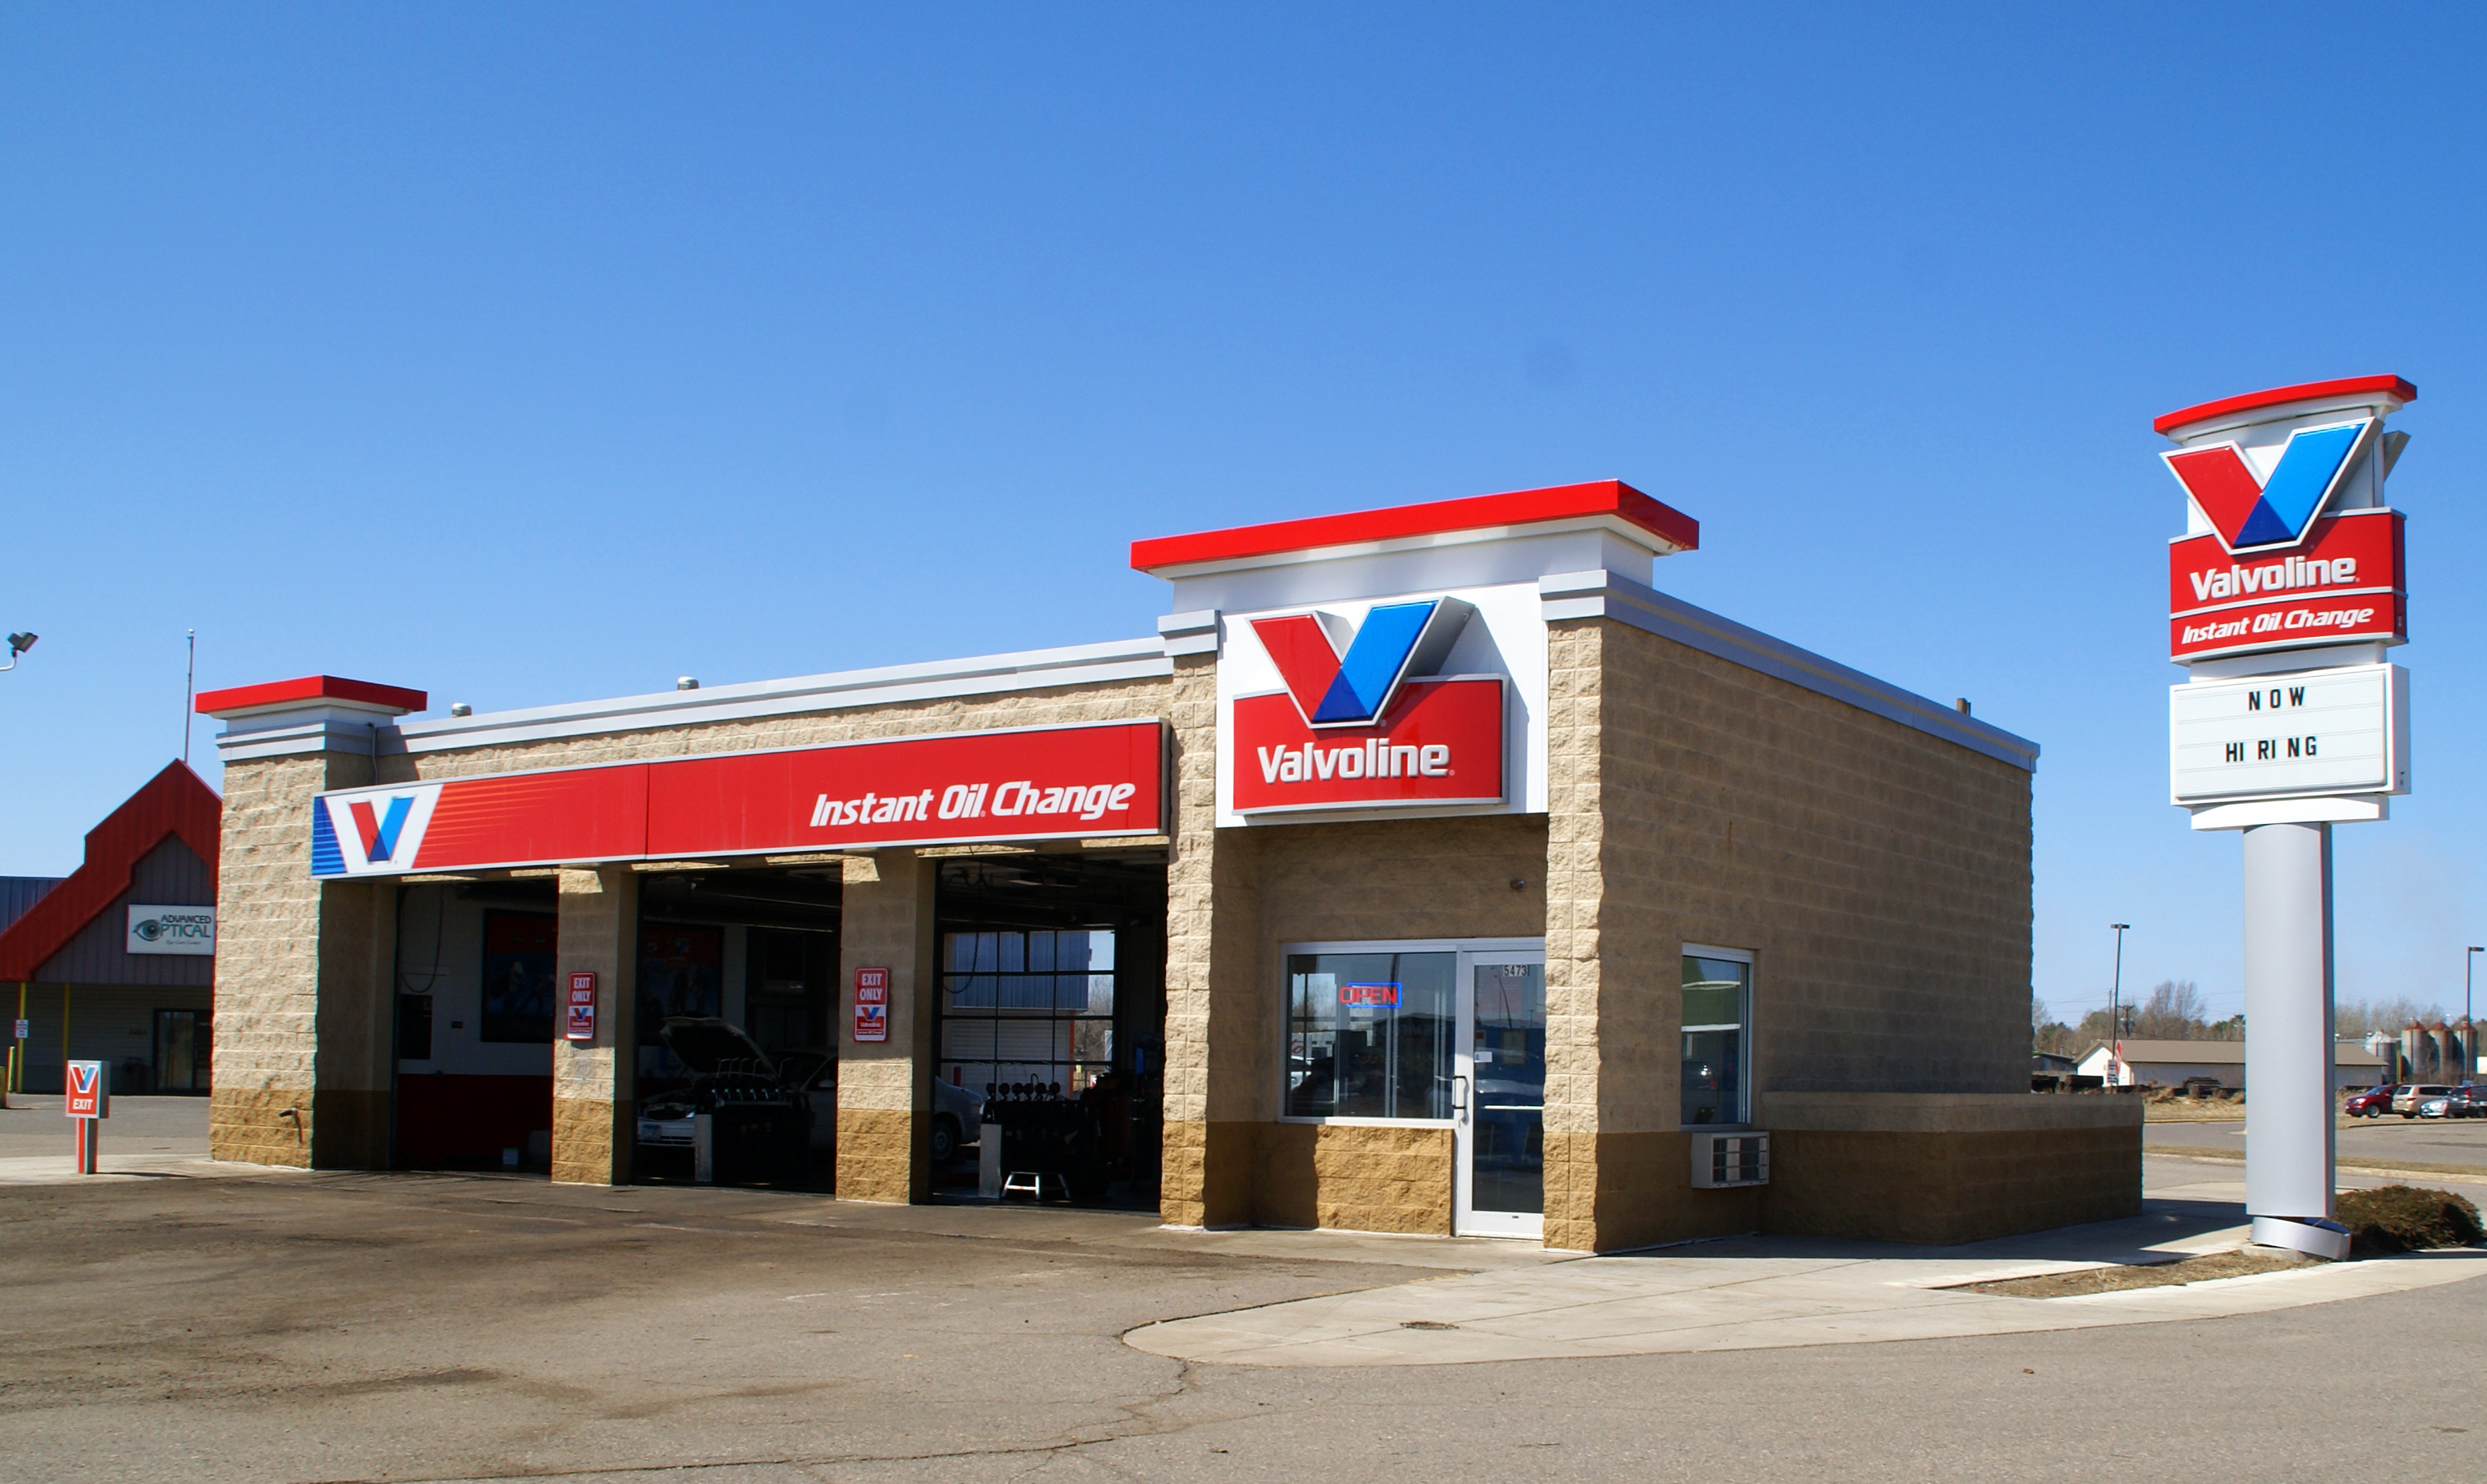 Valvoline instant oil change locations near me